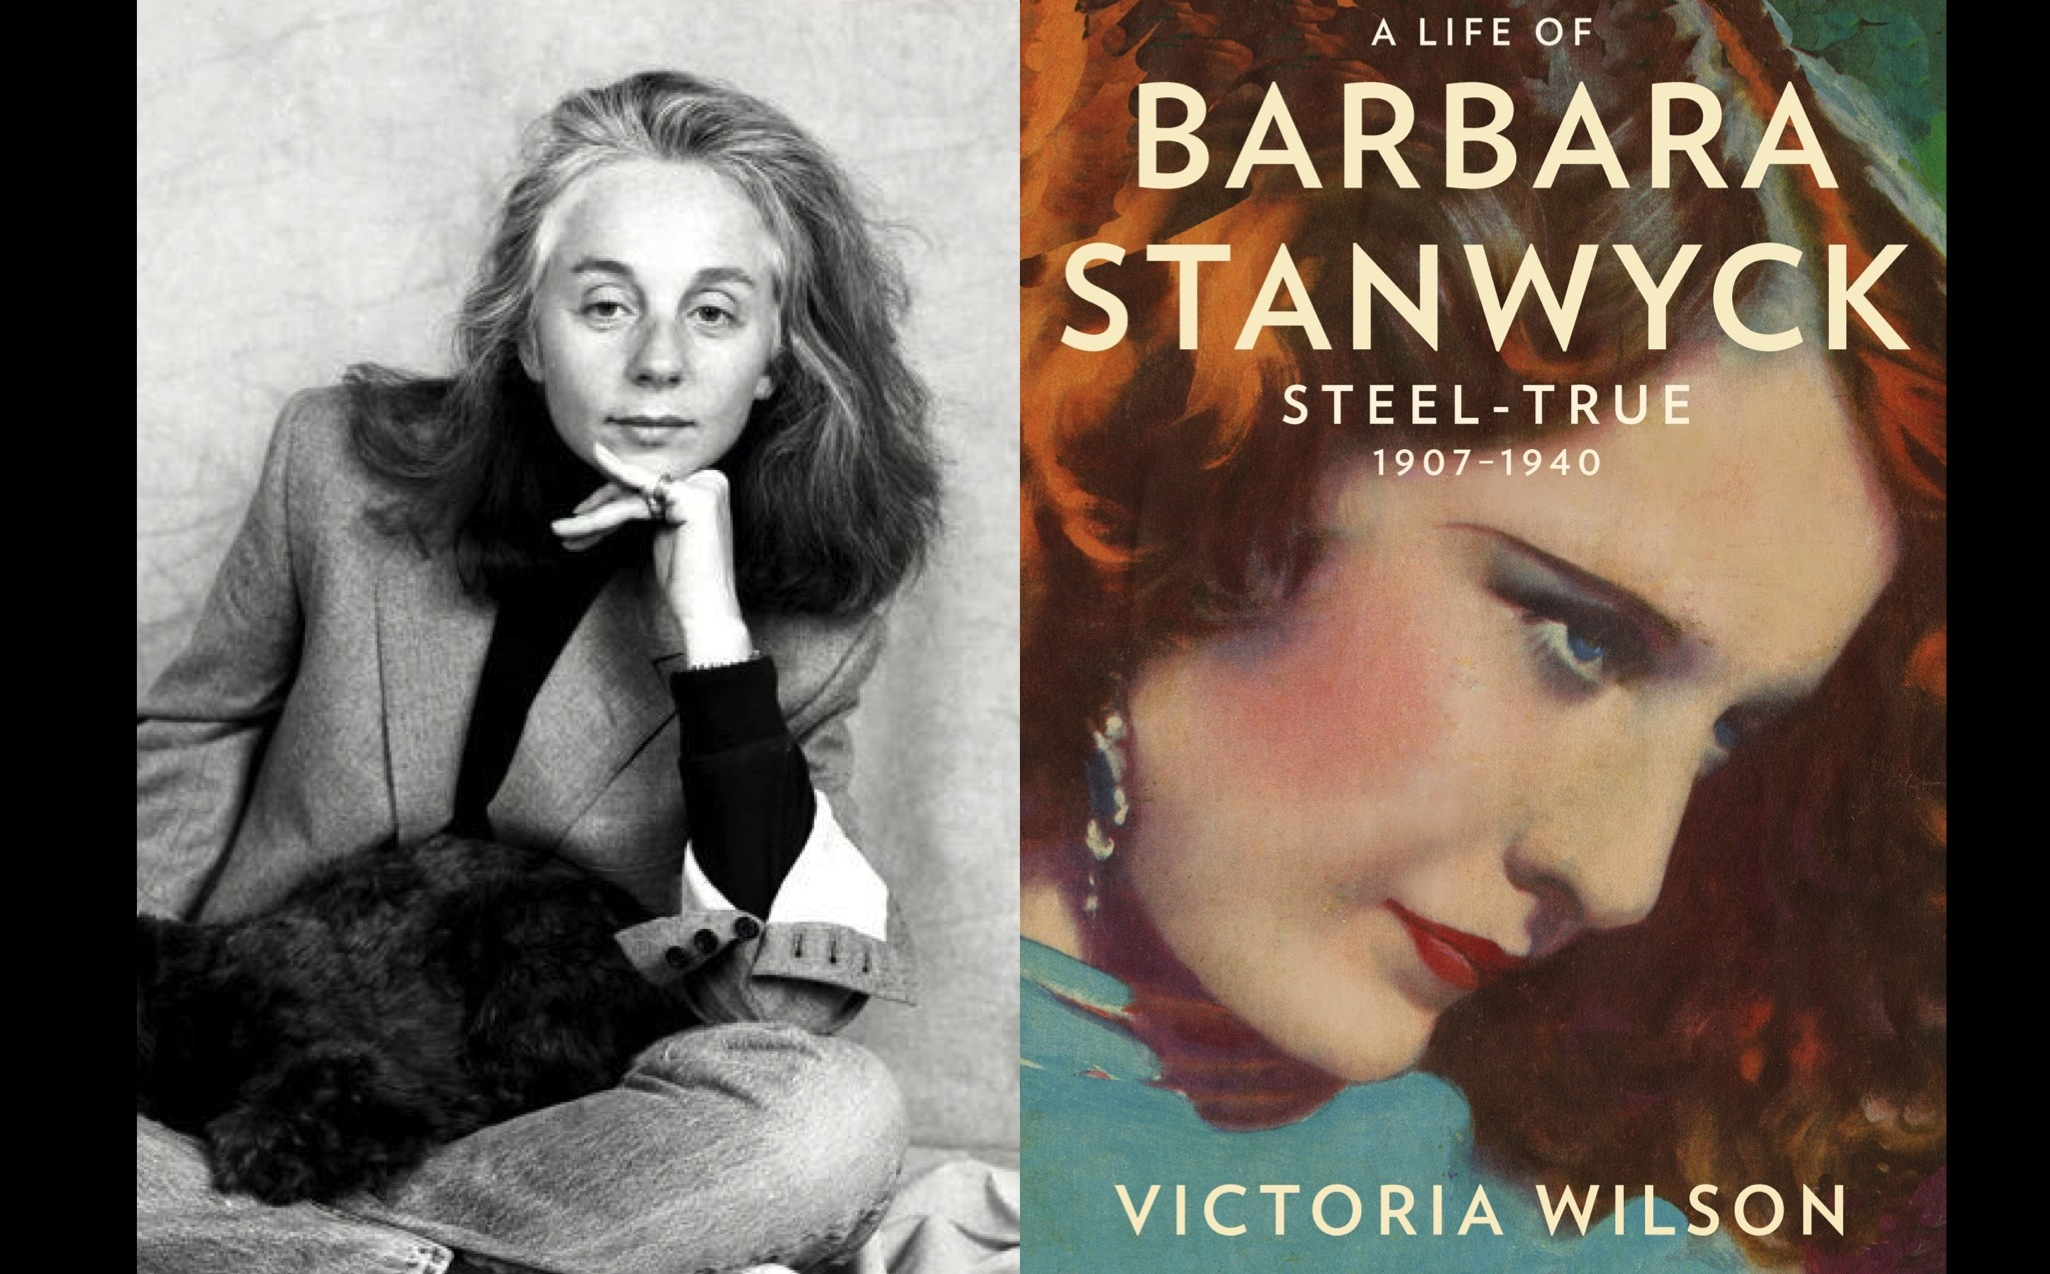 STANWYCK BEFORE HOLLYWOOD: AN ILLUSTRATED TALK presented by author Victoria Wilson